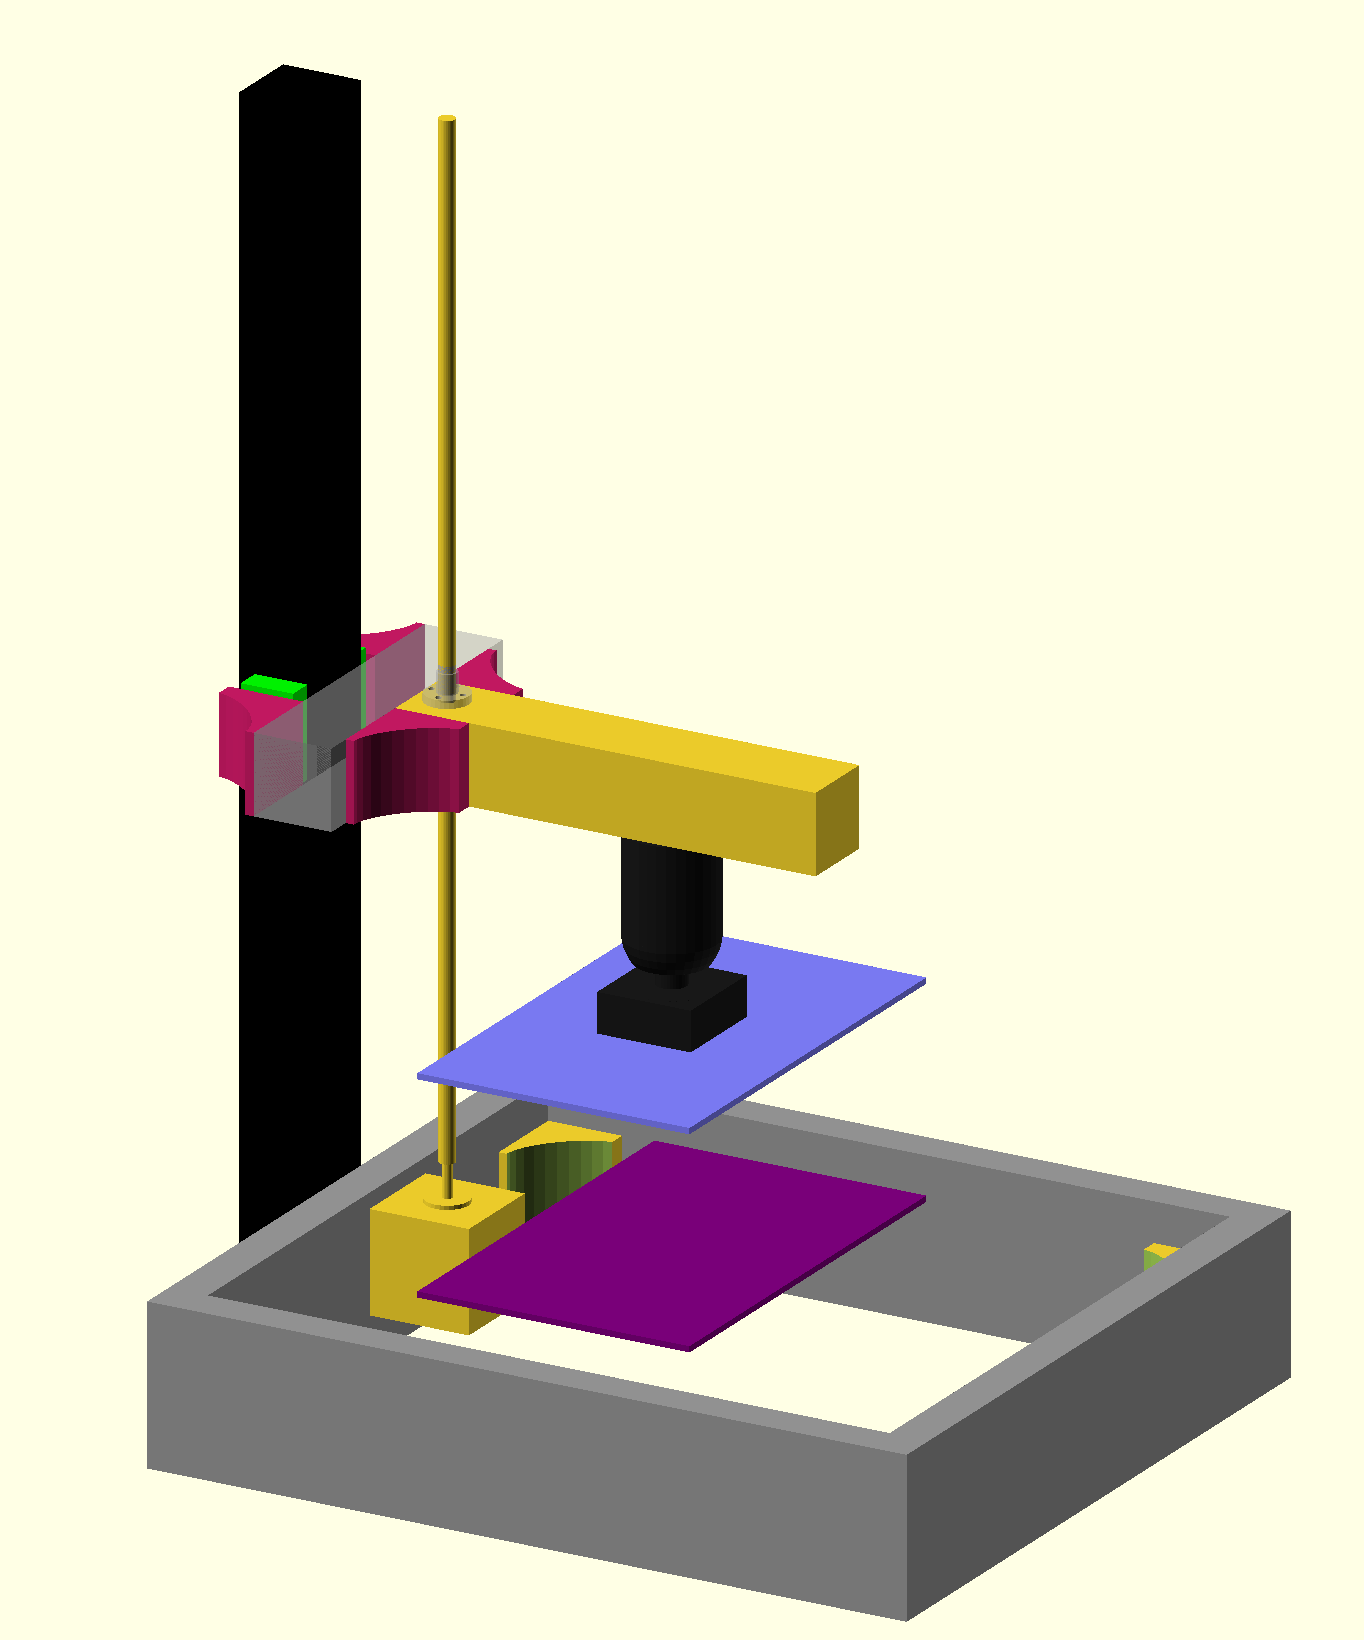 First draft of a single column resin printer with build plate and ball head attachment.